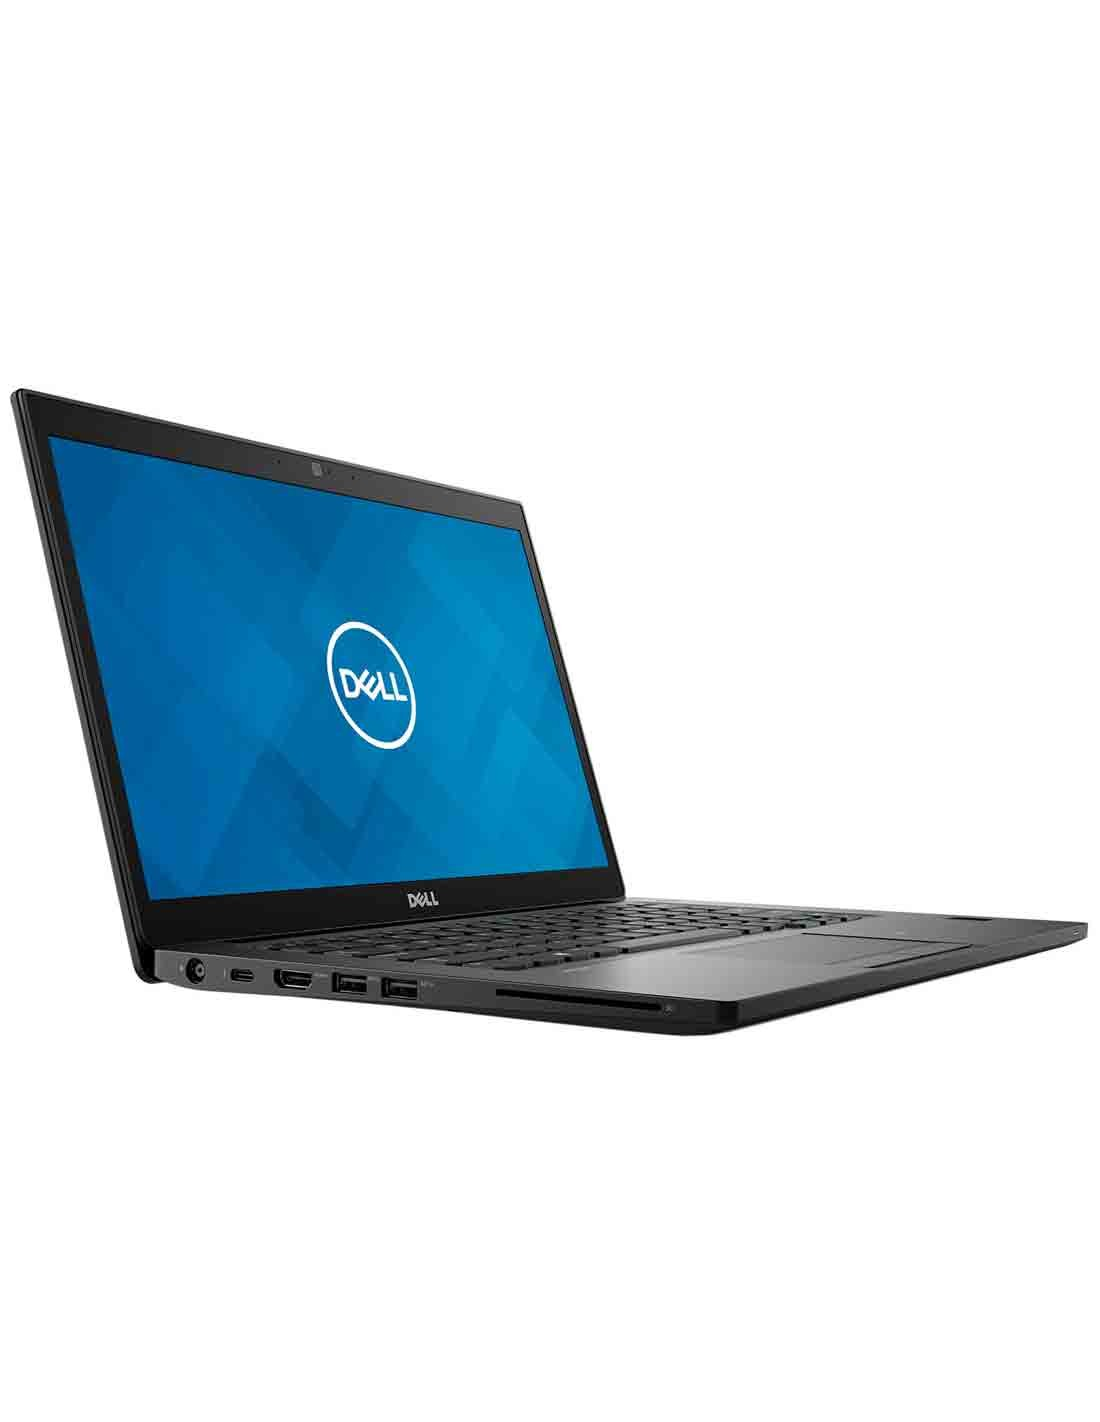 Dell Latitude 7490 Laptop at the cheapest price and fast free delivery in Dubai, UAE